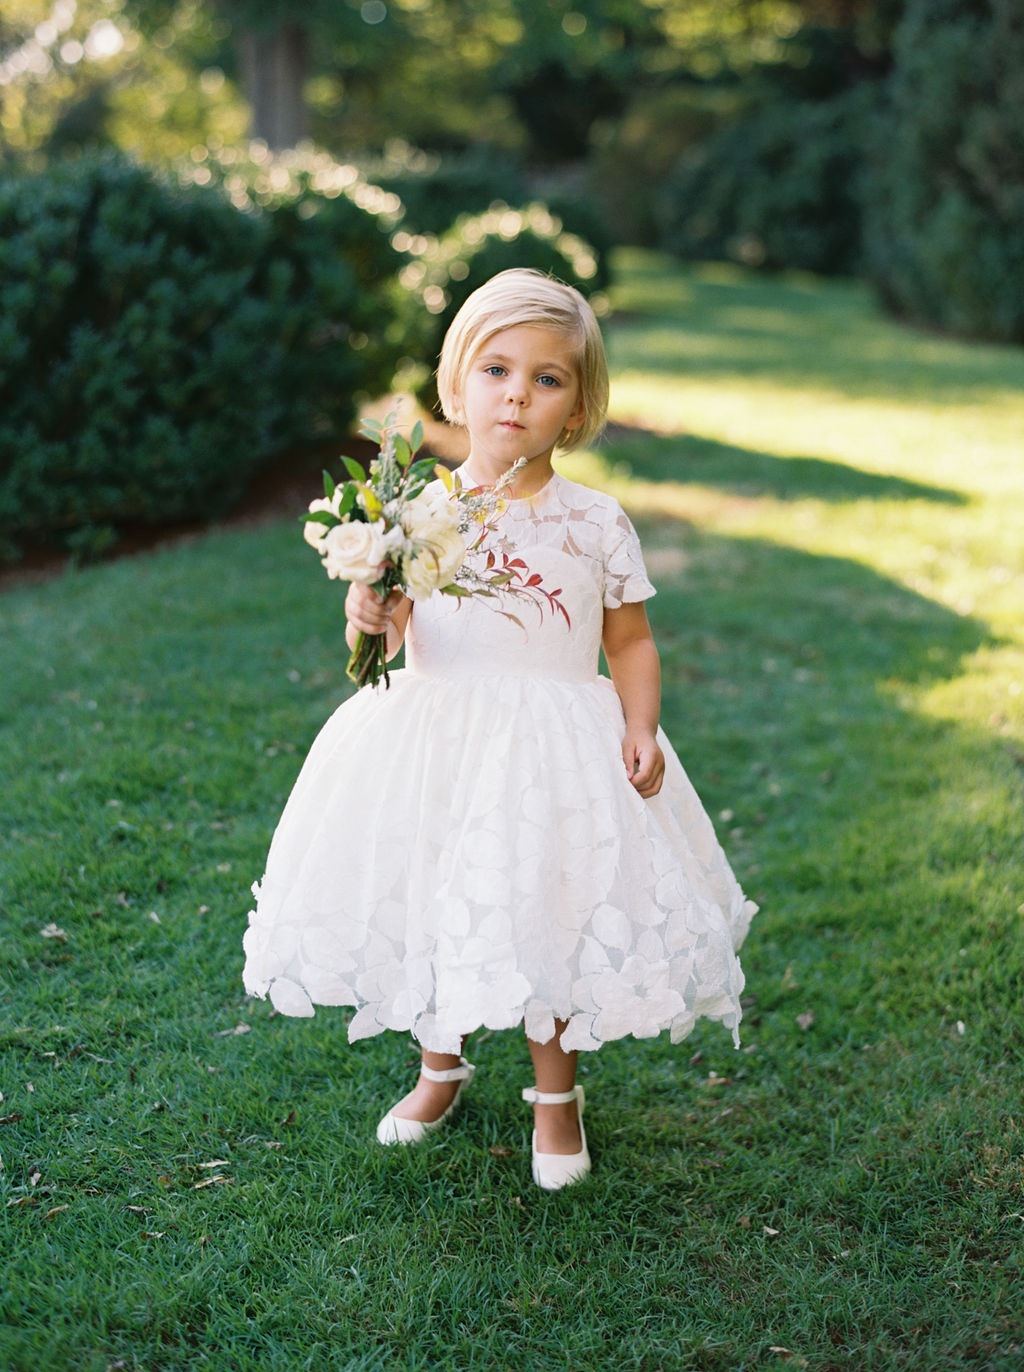 Dainty posey for the flower girl. Nashville Wedding Florist.